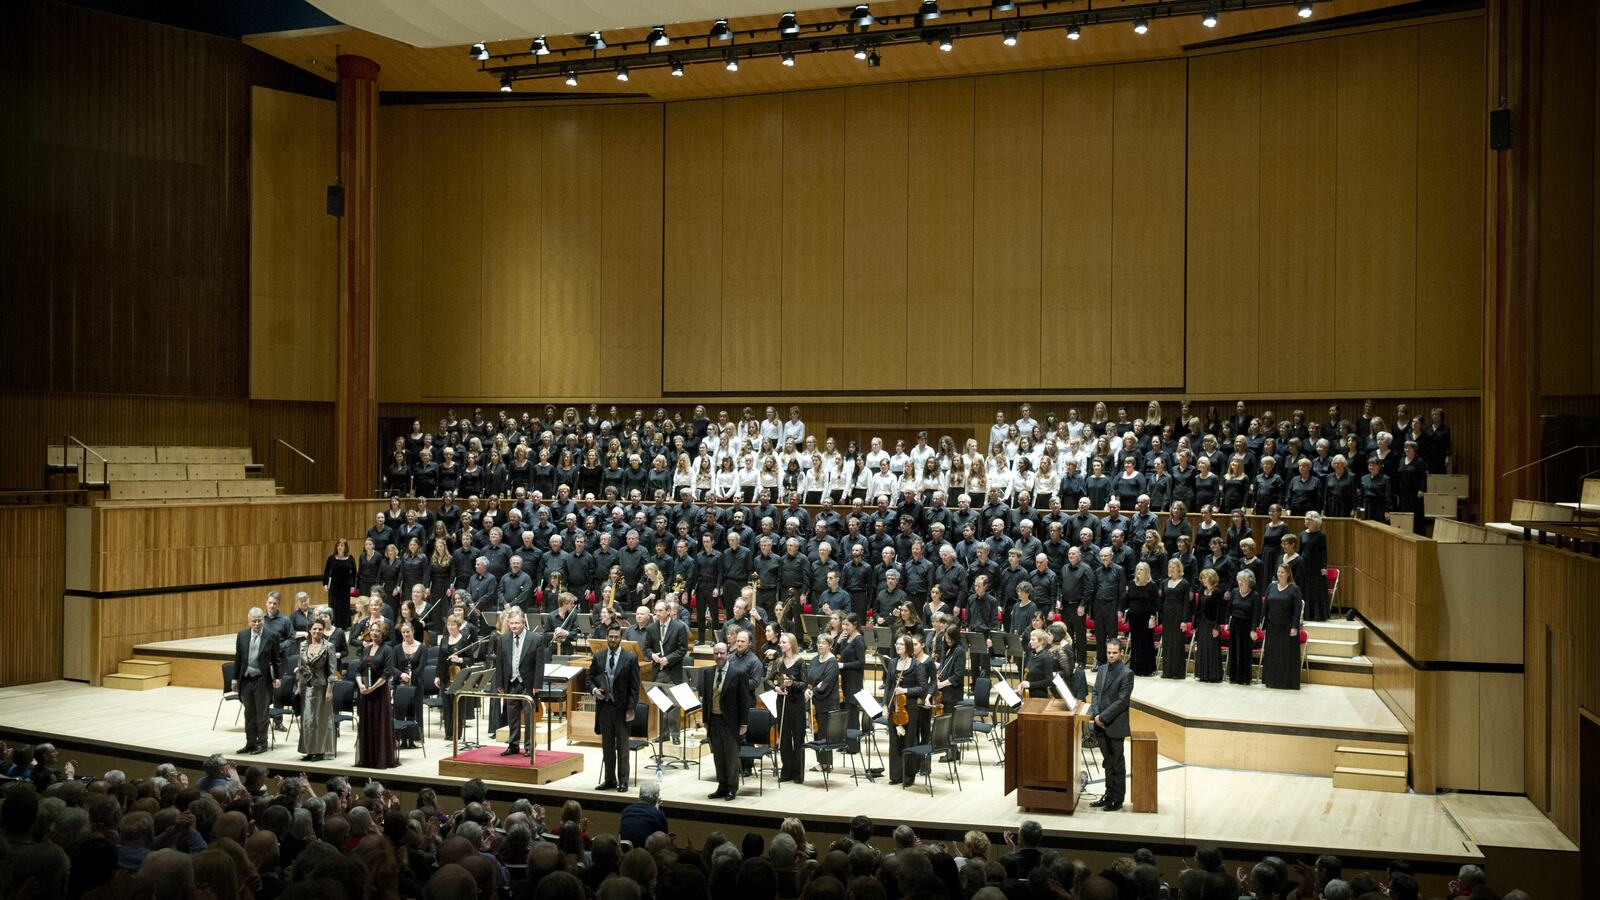 The Bach Choir on stage